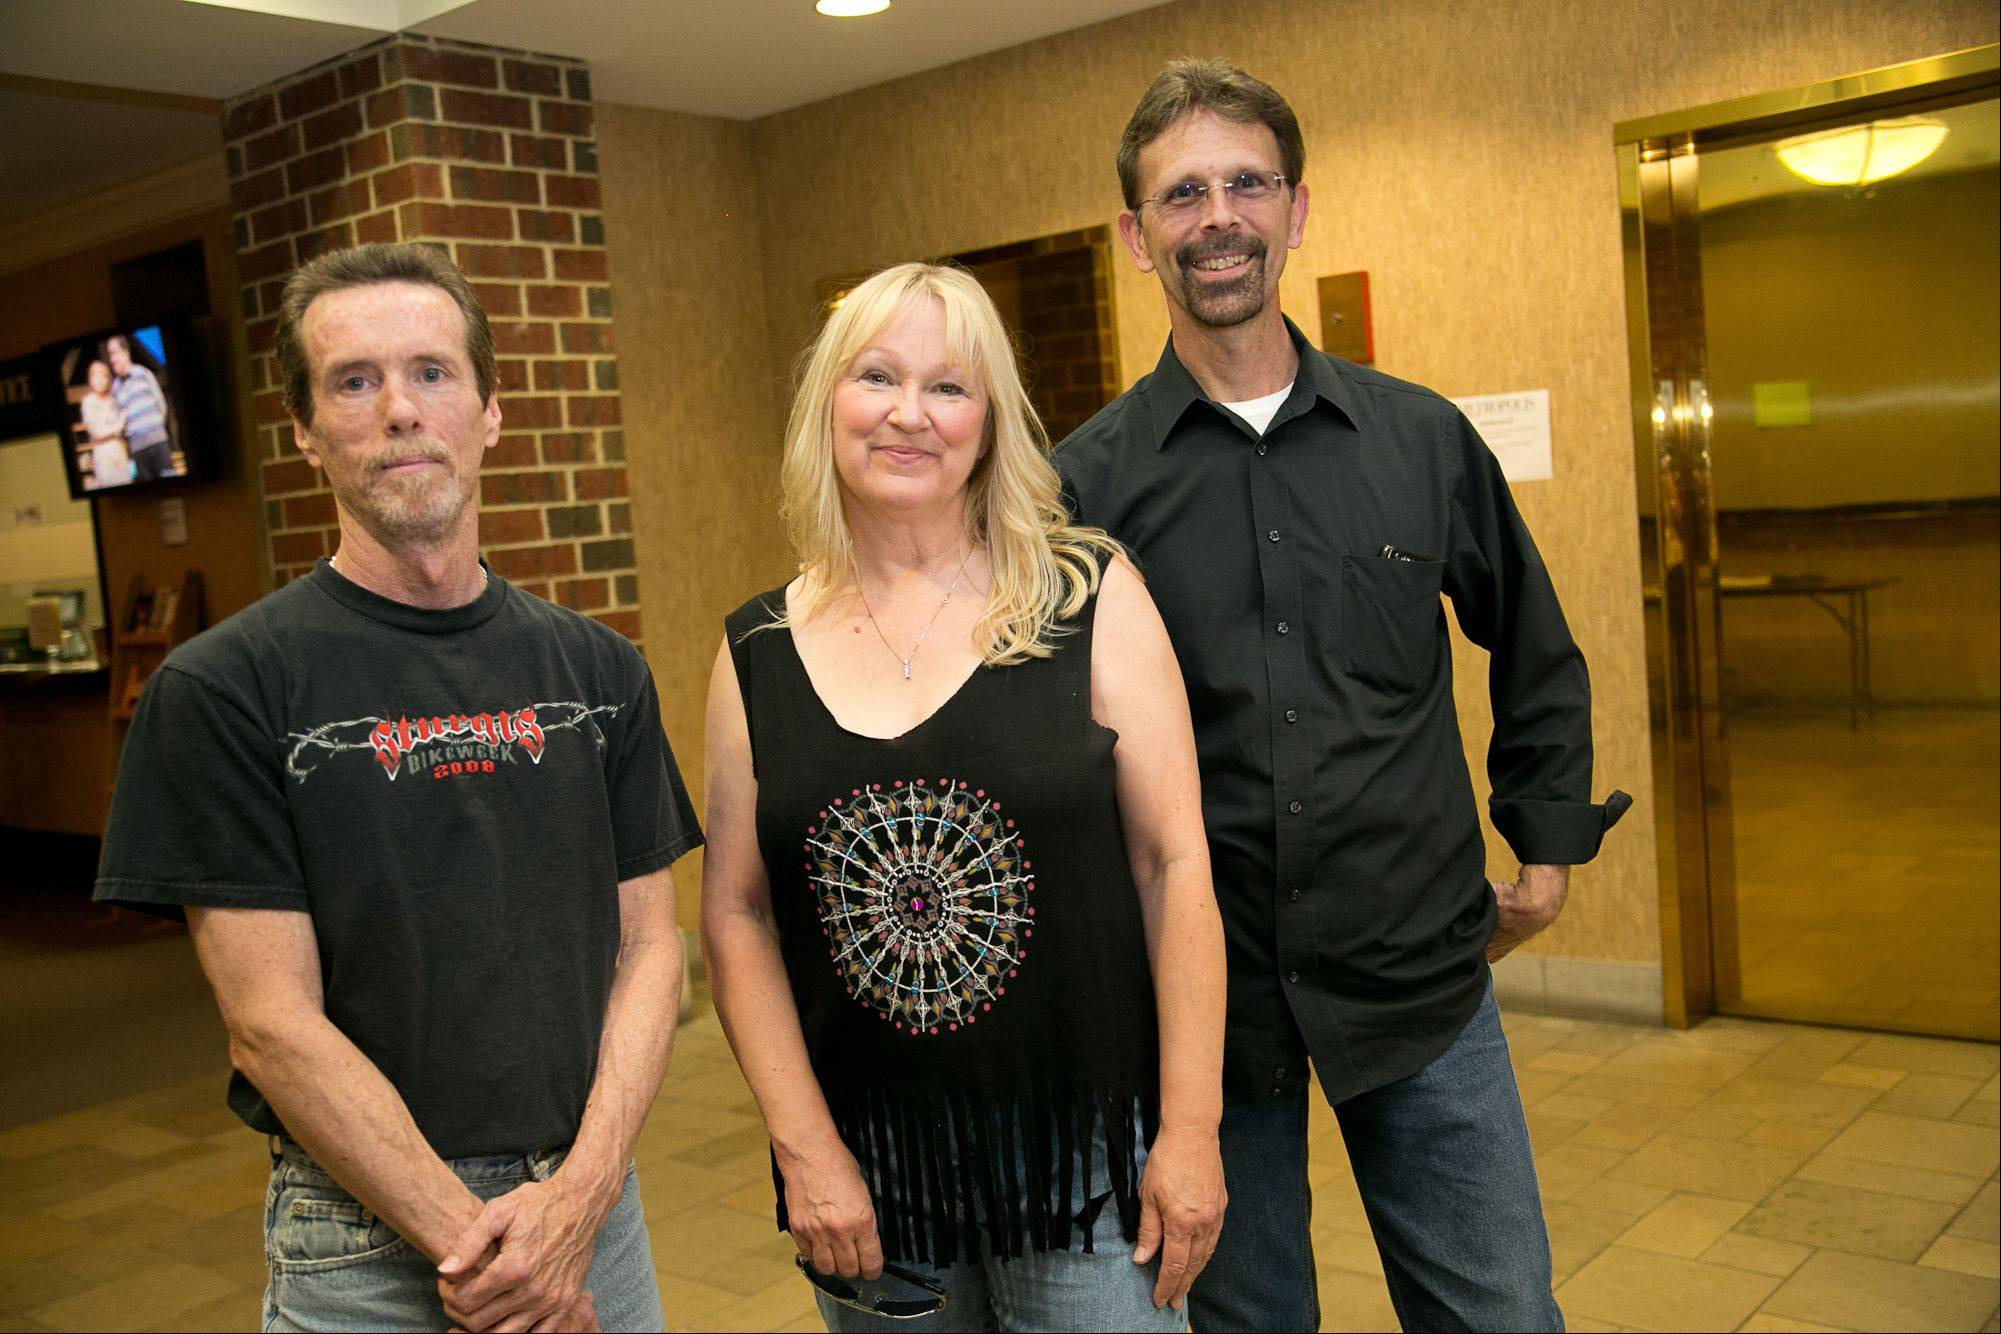 MELZ band -- featuring, from left, Gary Ehlebracht of Naperville, Julie Zuker of Schaumburg and Dan Lawler of Elk Grove Village -- is one of the Top 30 finalists in Suburban Chicago's Got Talent.